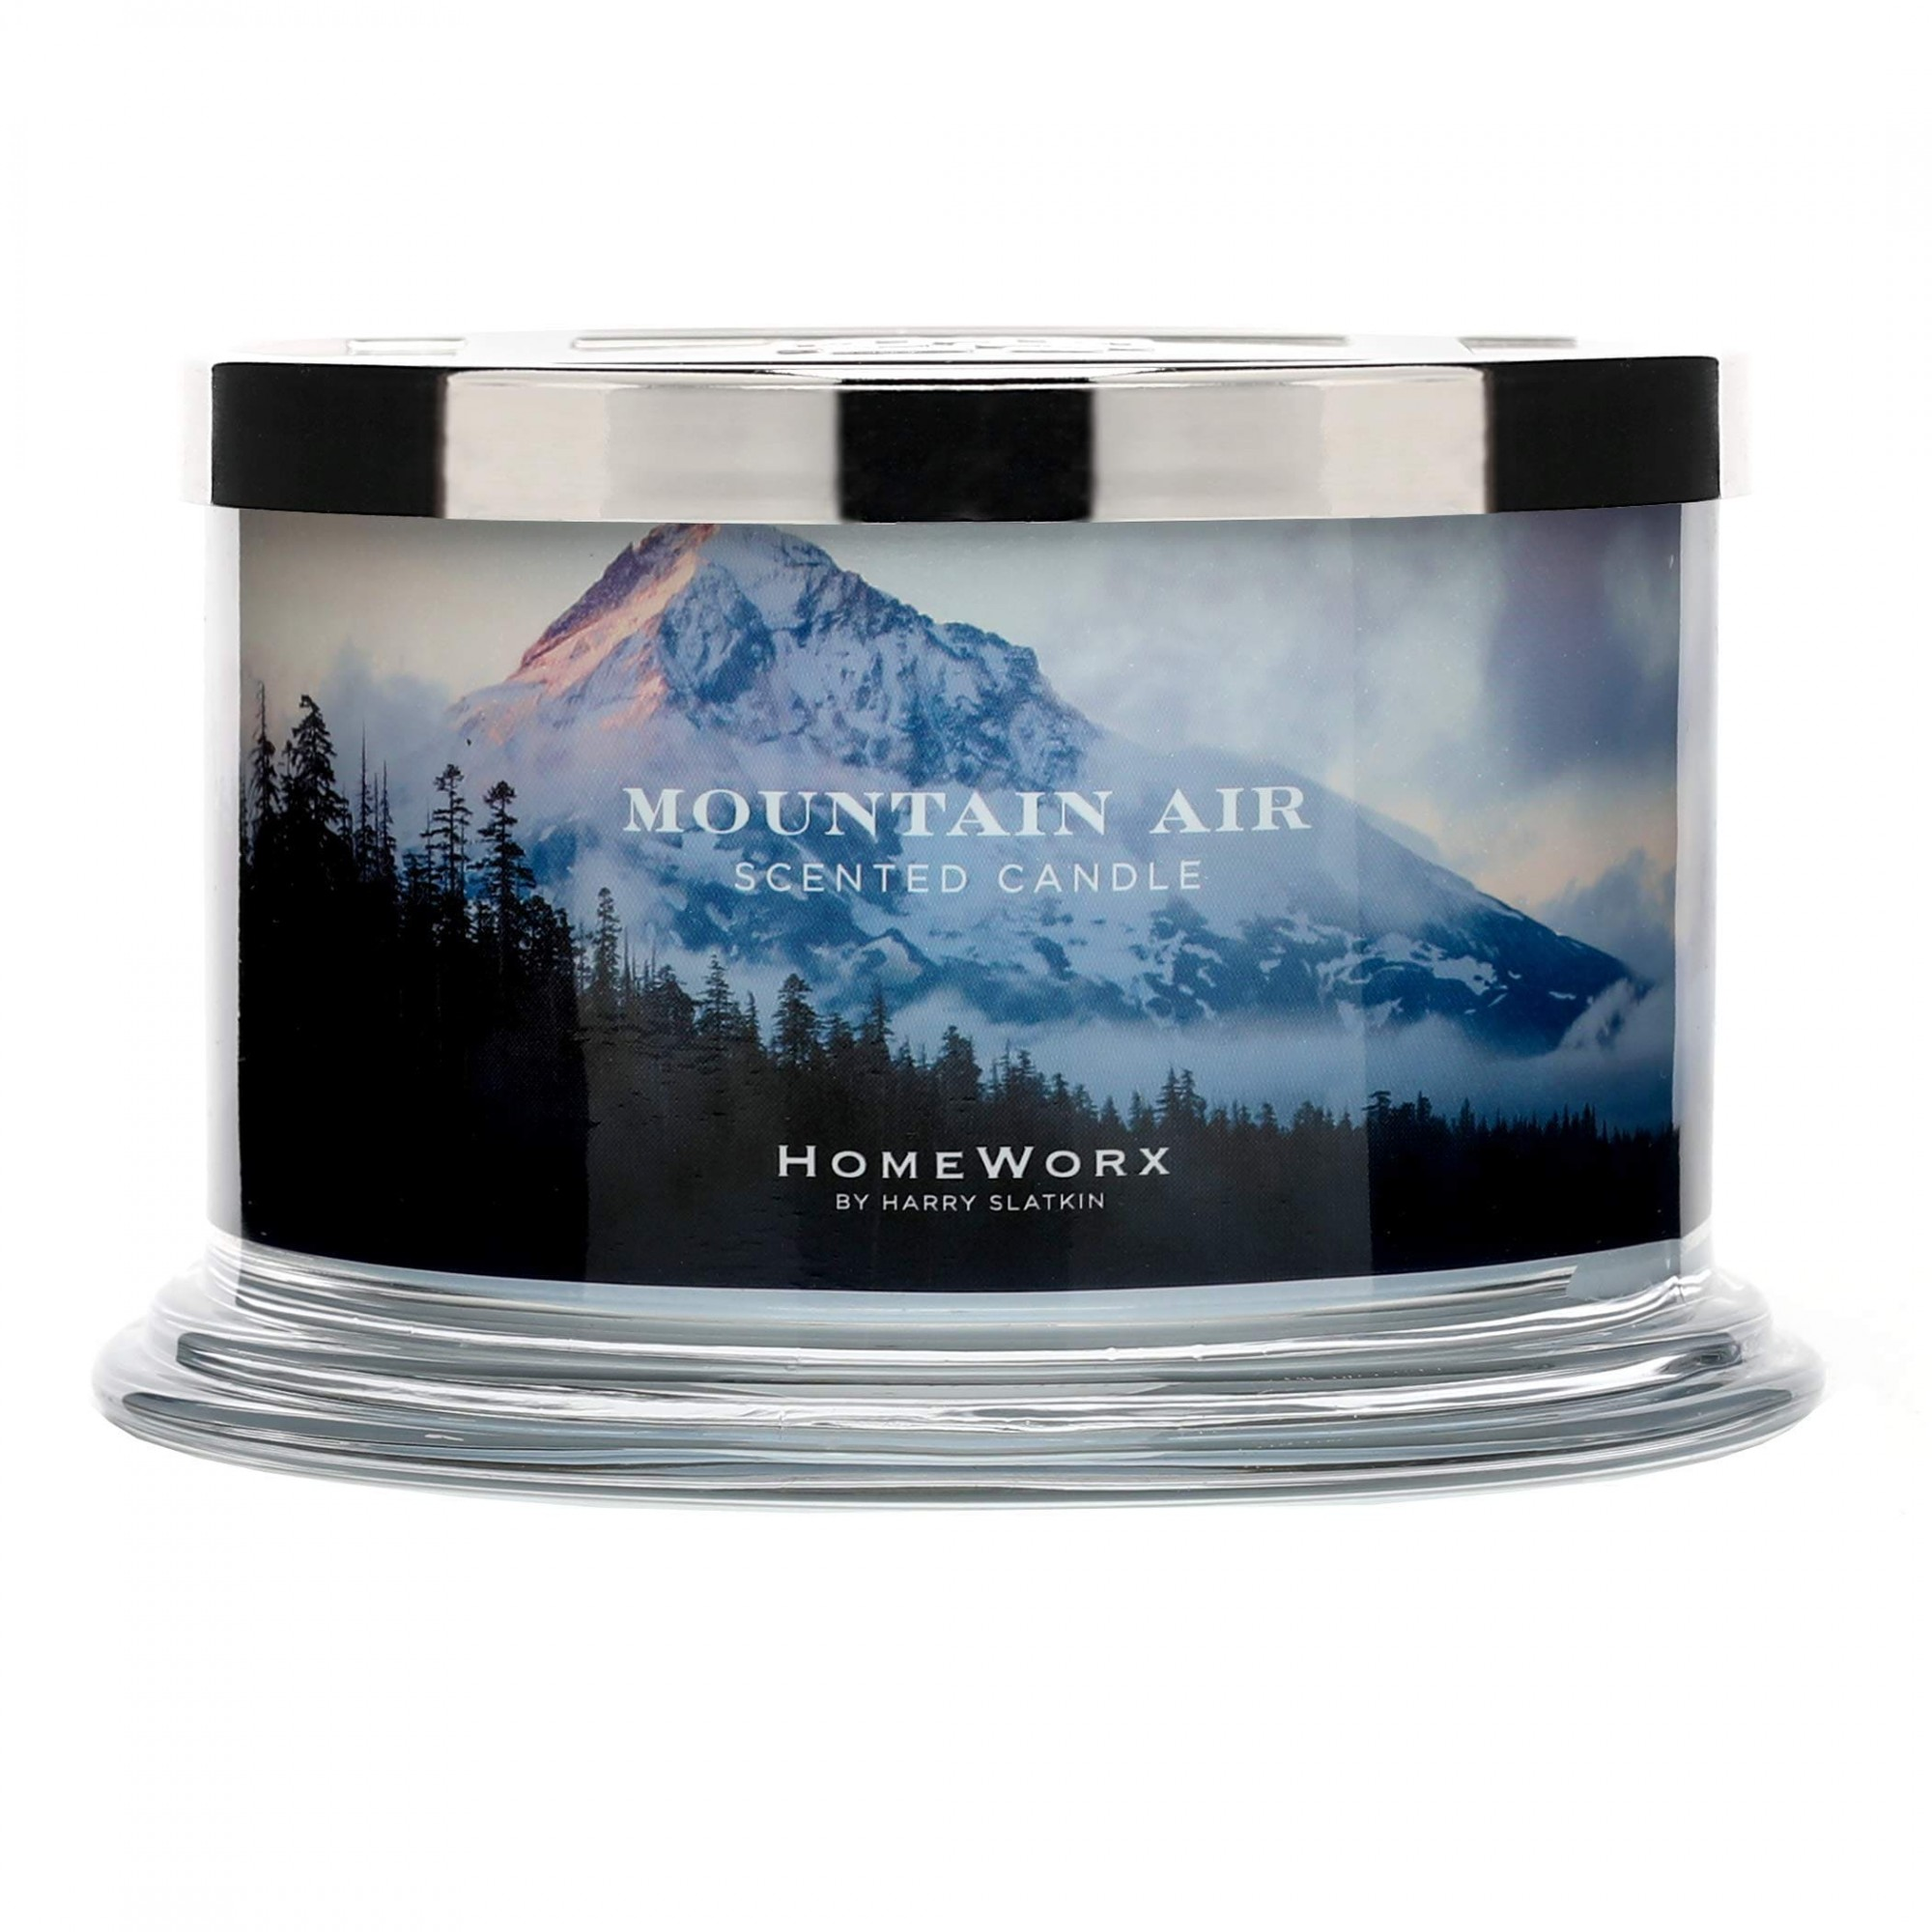 Homeworx by Harry Slatkin Mountain Air 4 Wick Candle